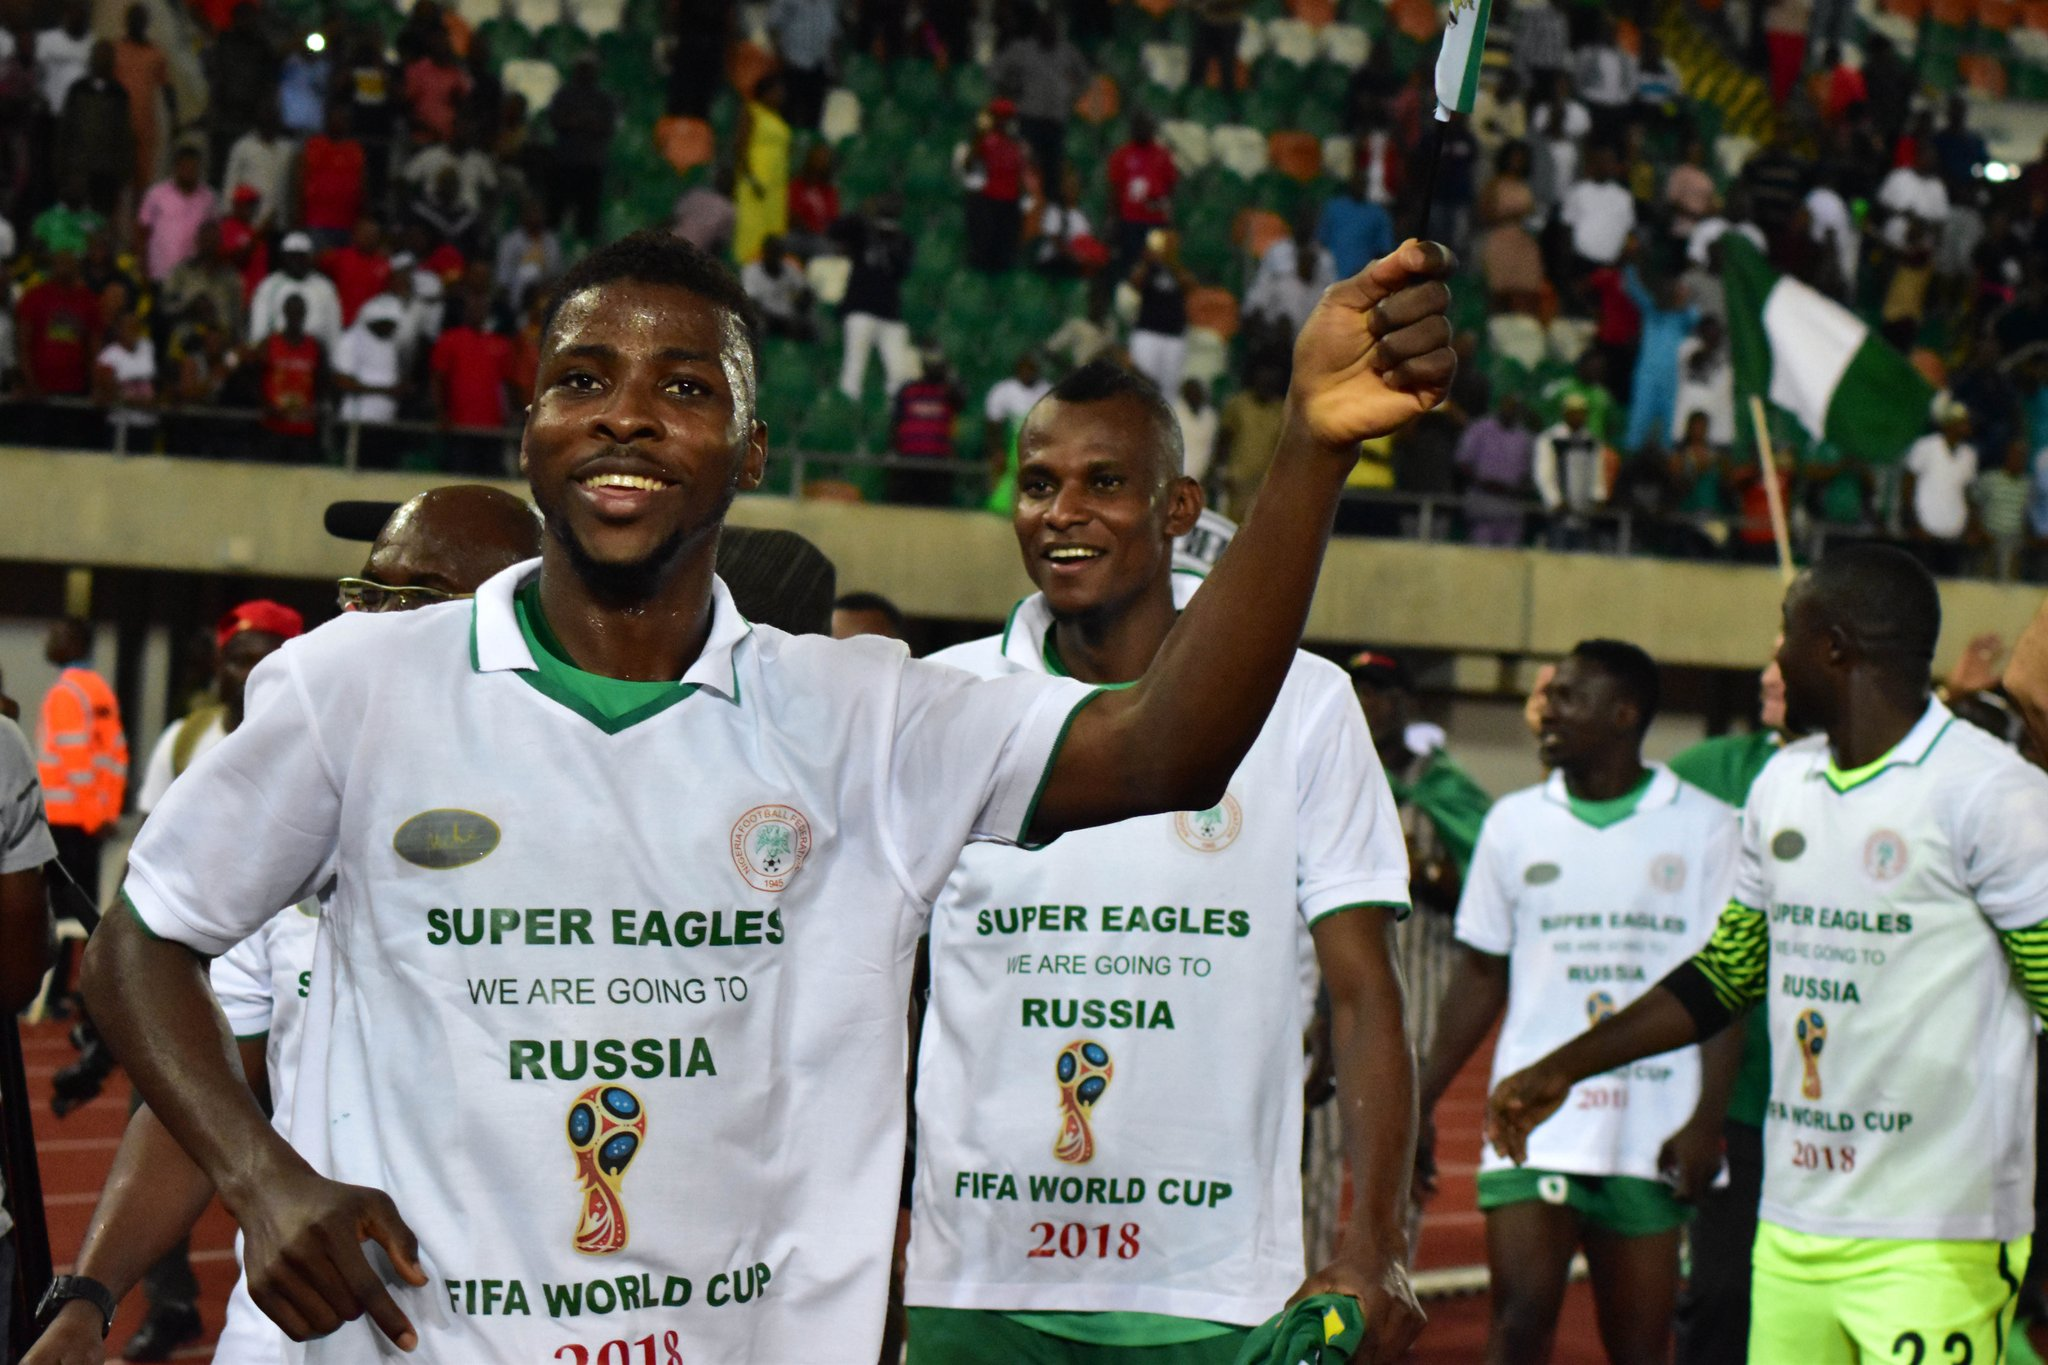 Nigeria's World Cup qualification, Mayweather's victory  tops 2017 sporting moments